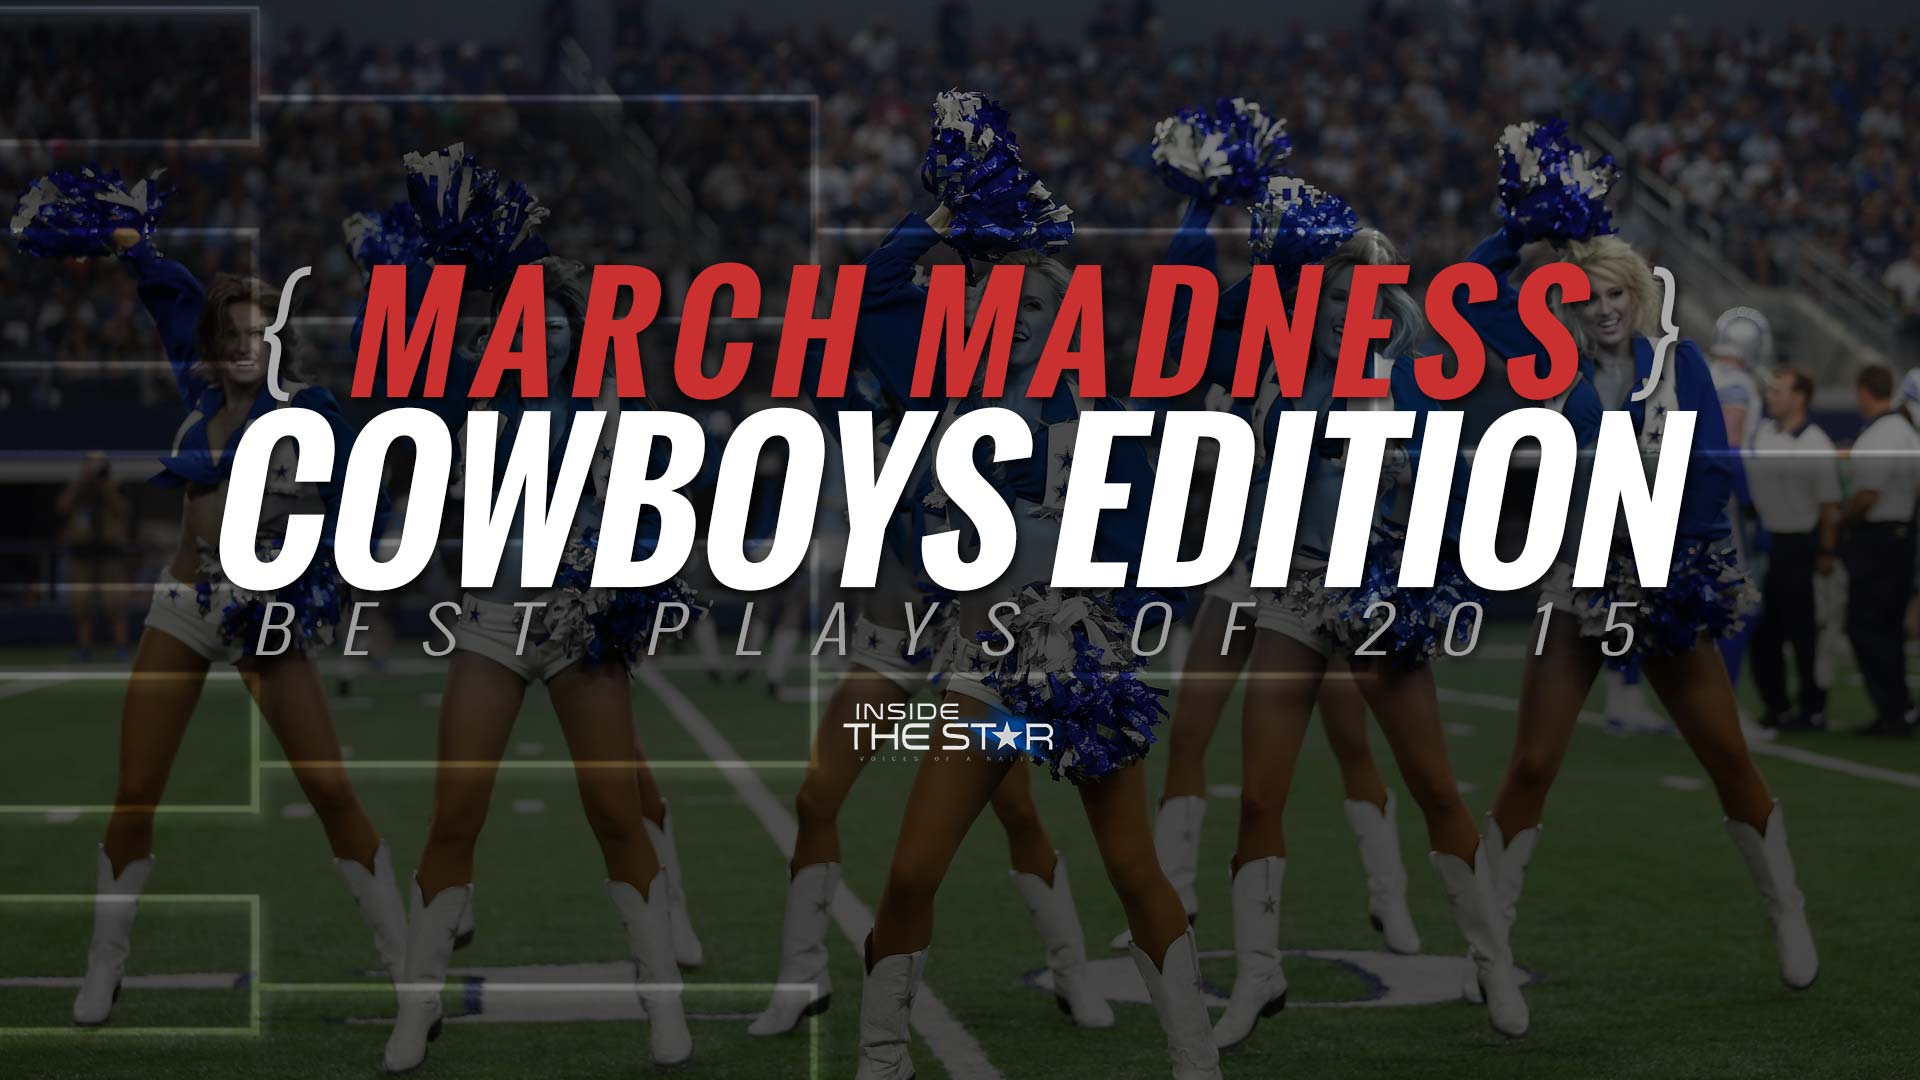 The Star News - March Madness: Cowboys Edition, Championship Round